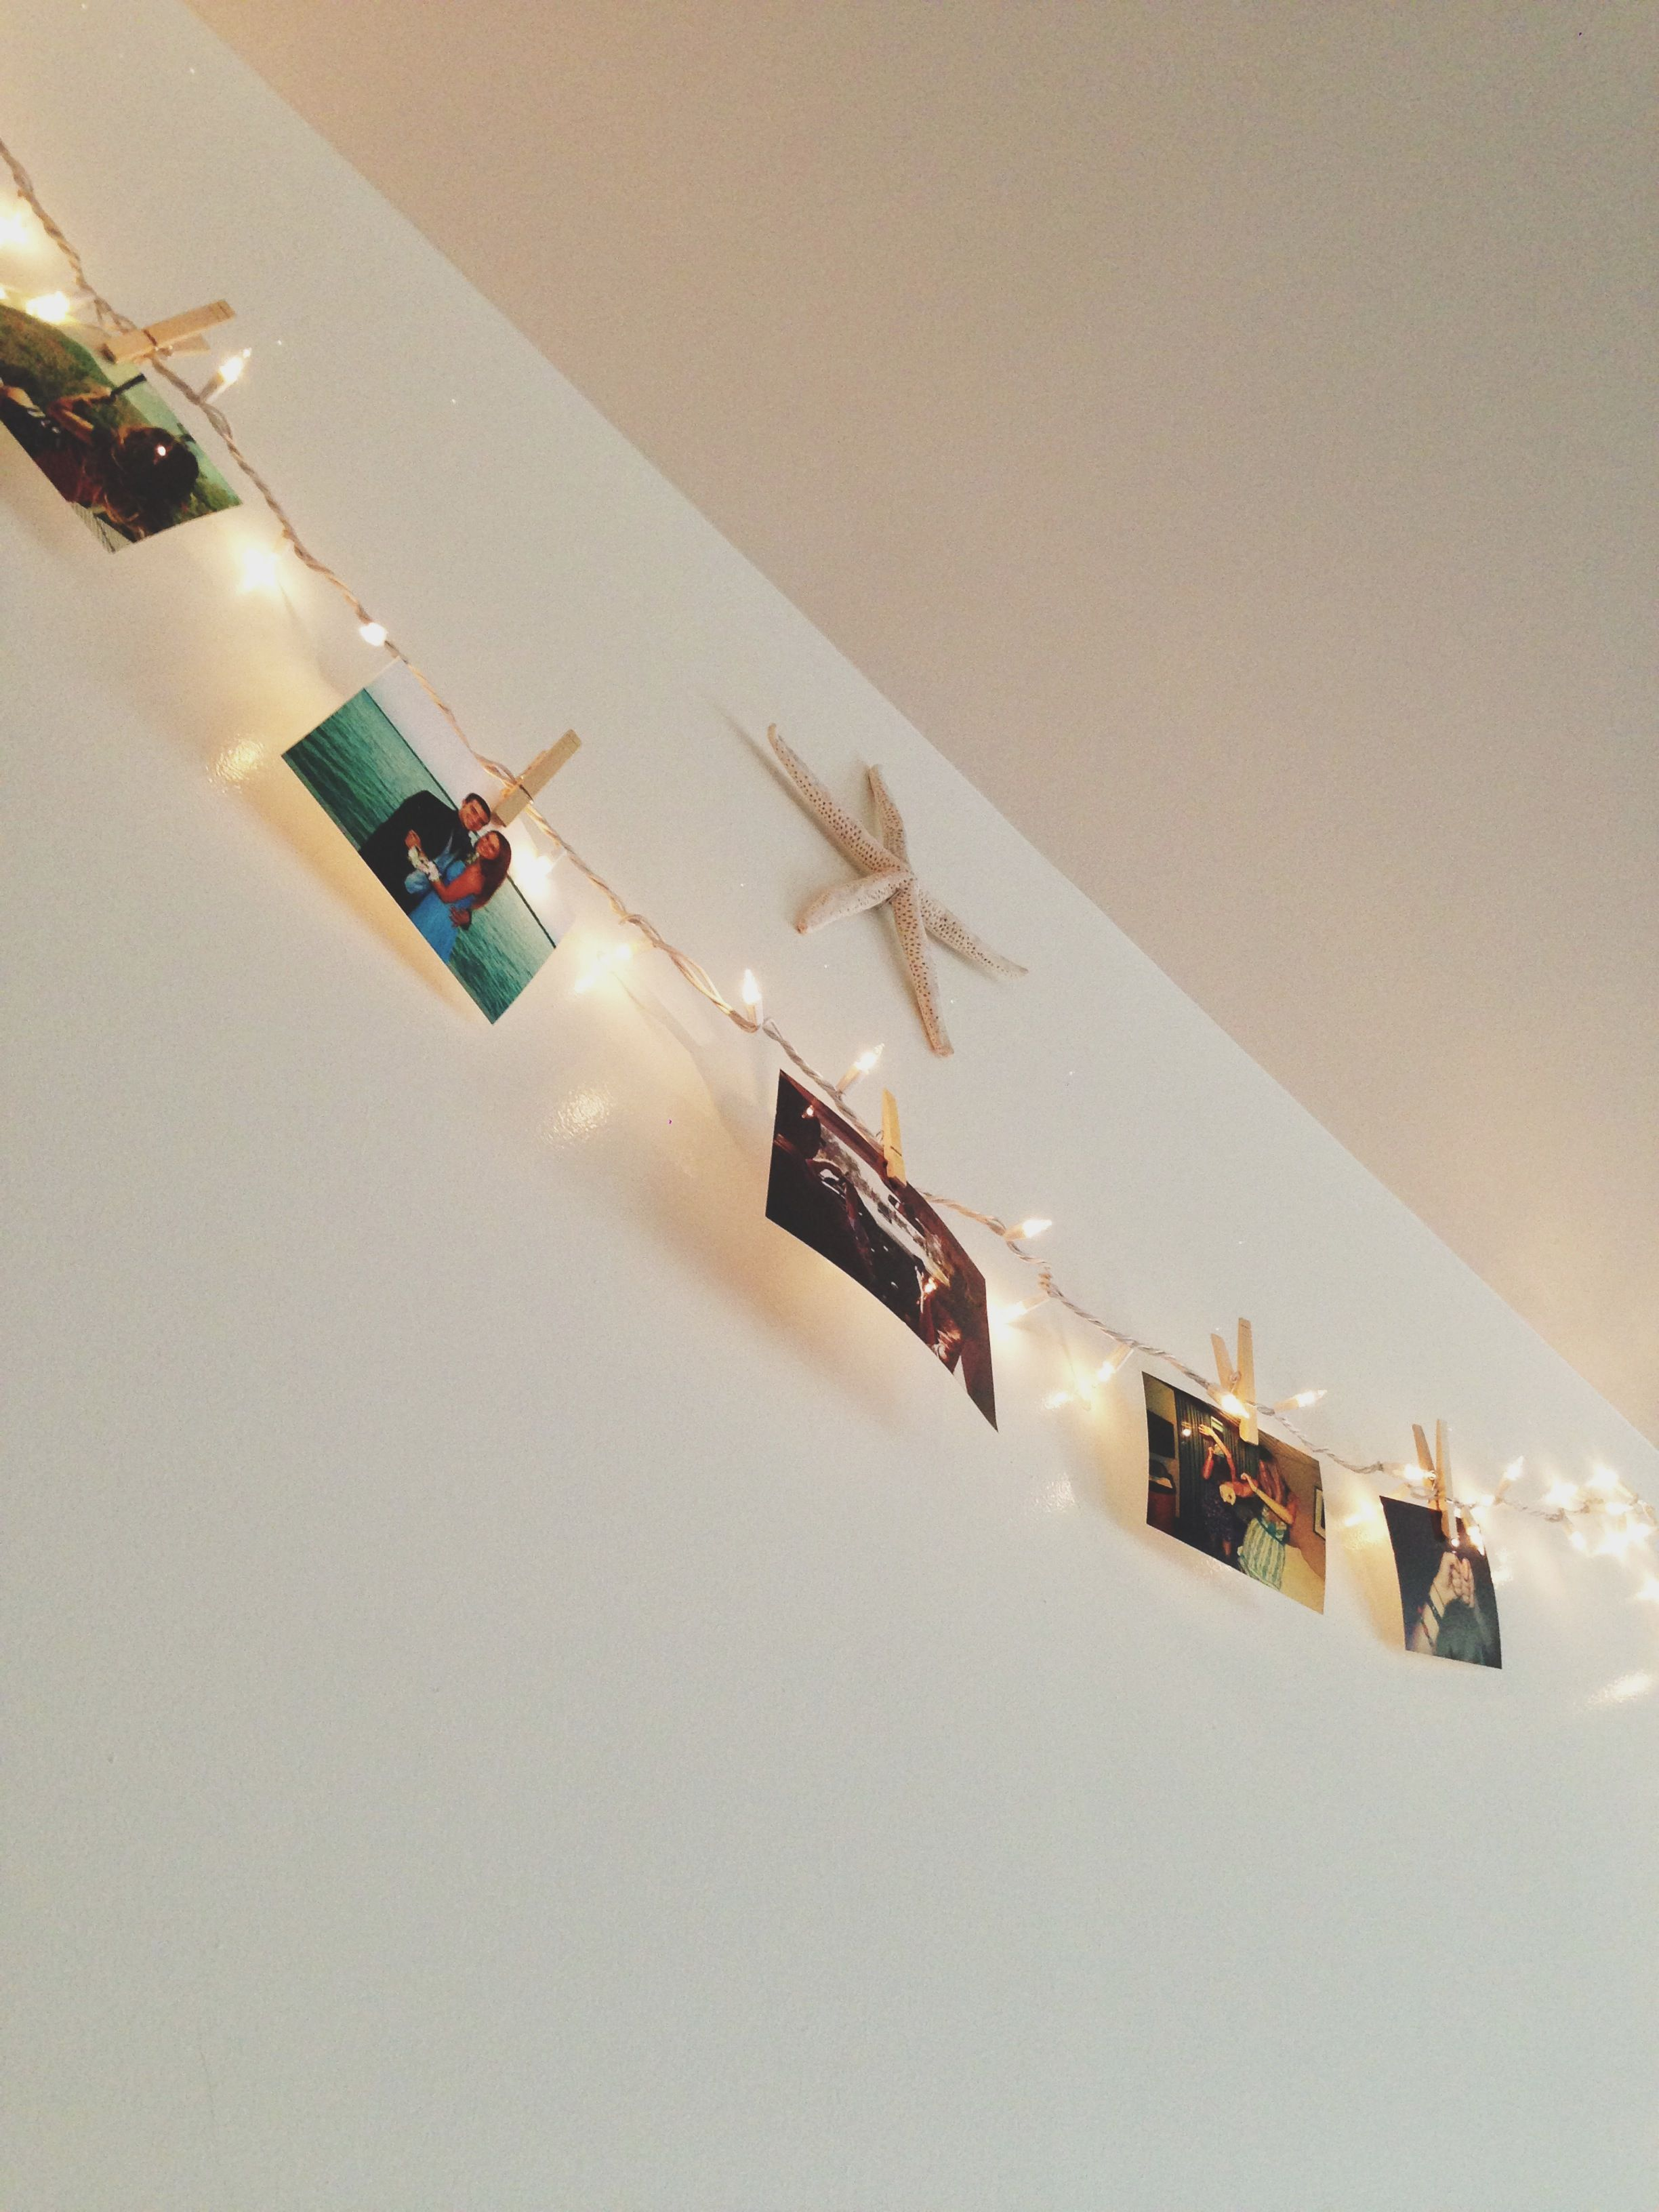 Wall String Lights For Bedroom: String Lights Across A Wall Held Up With Little Nails